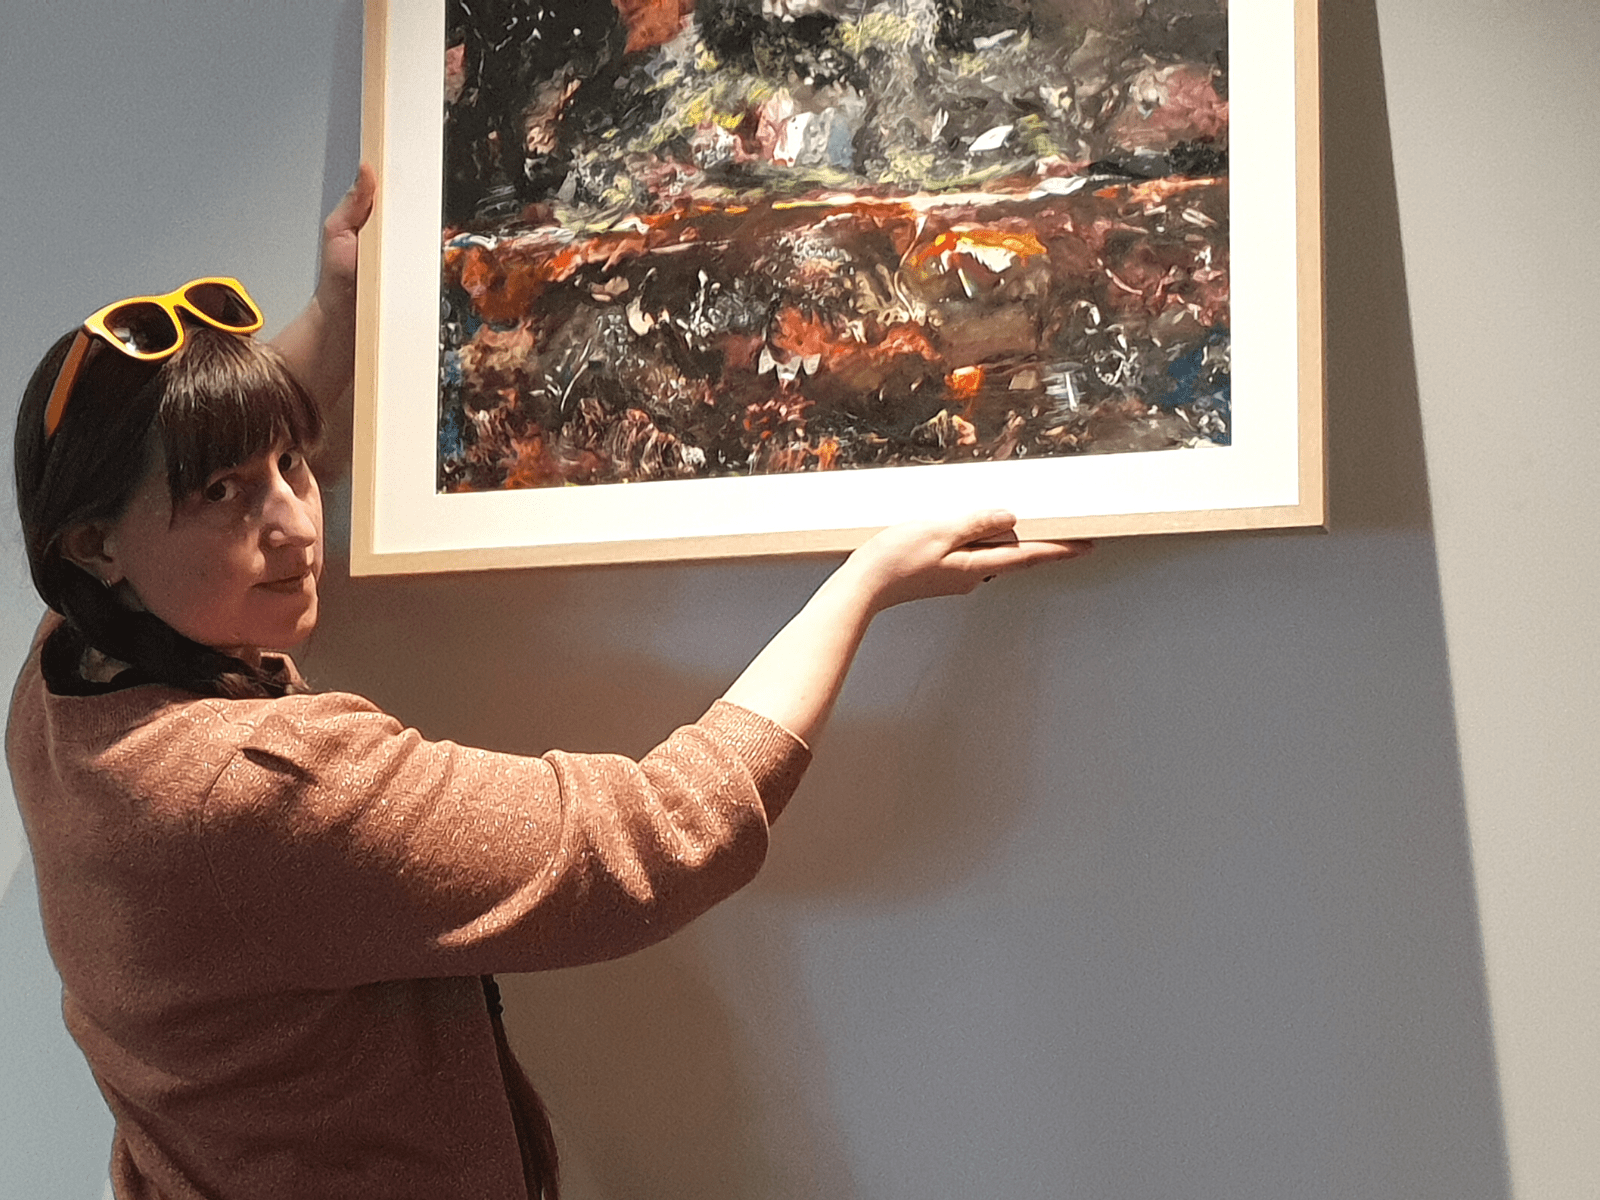 A woman holds a framed painting up against a wall as she looks back at the camera